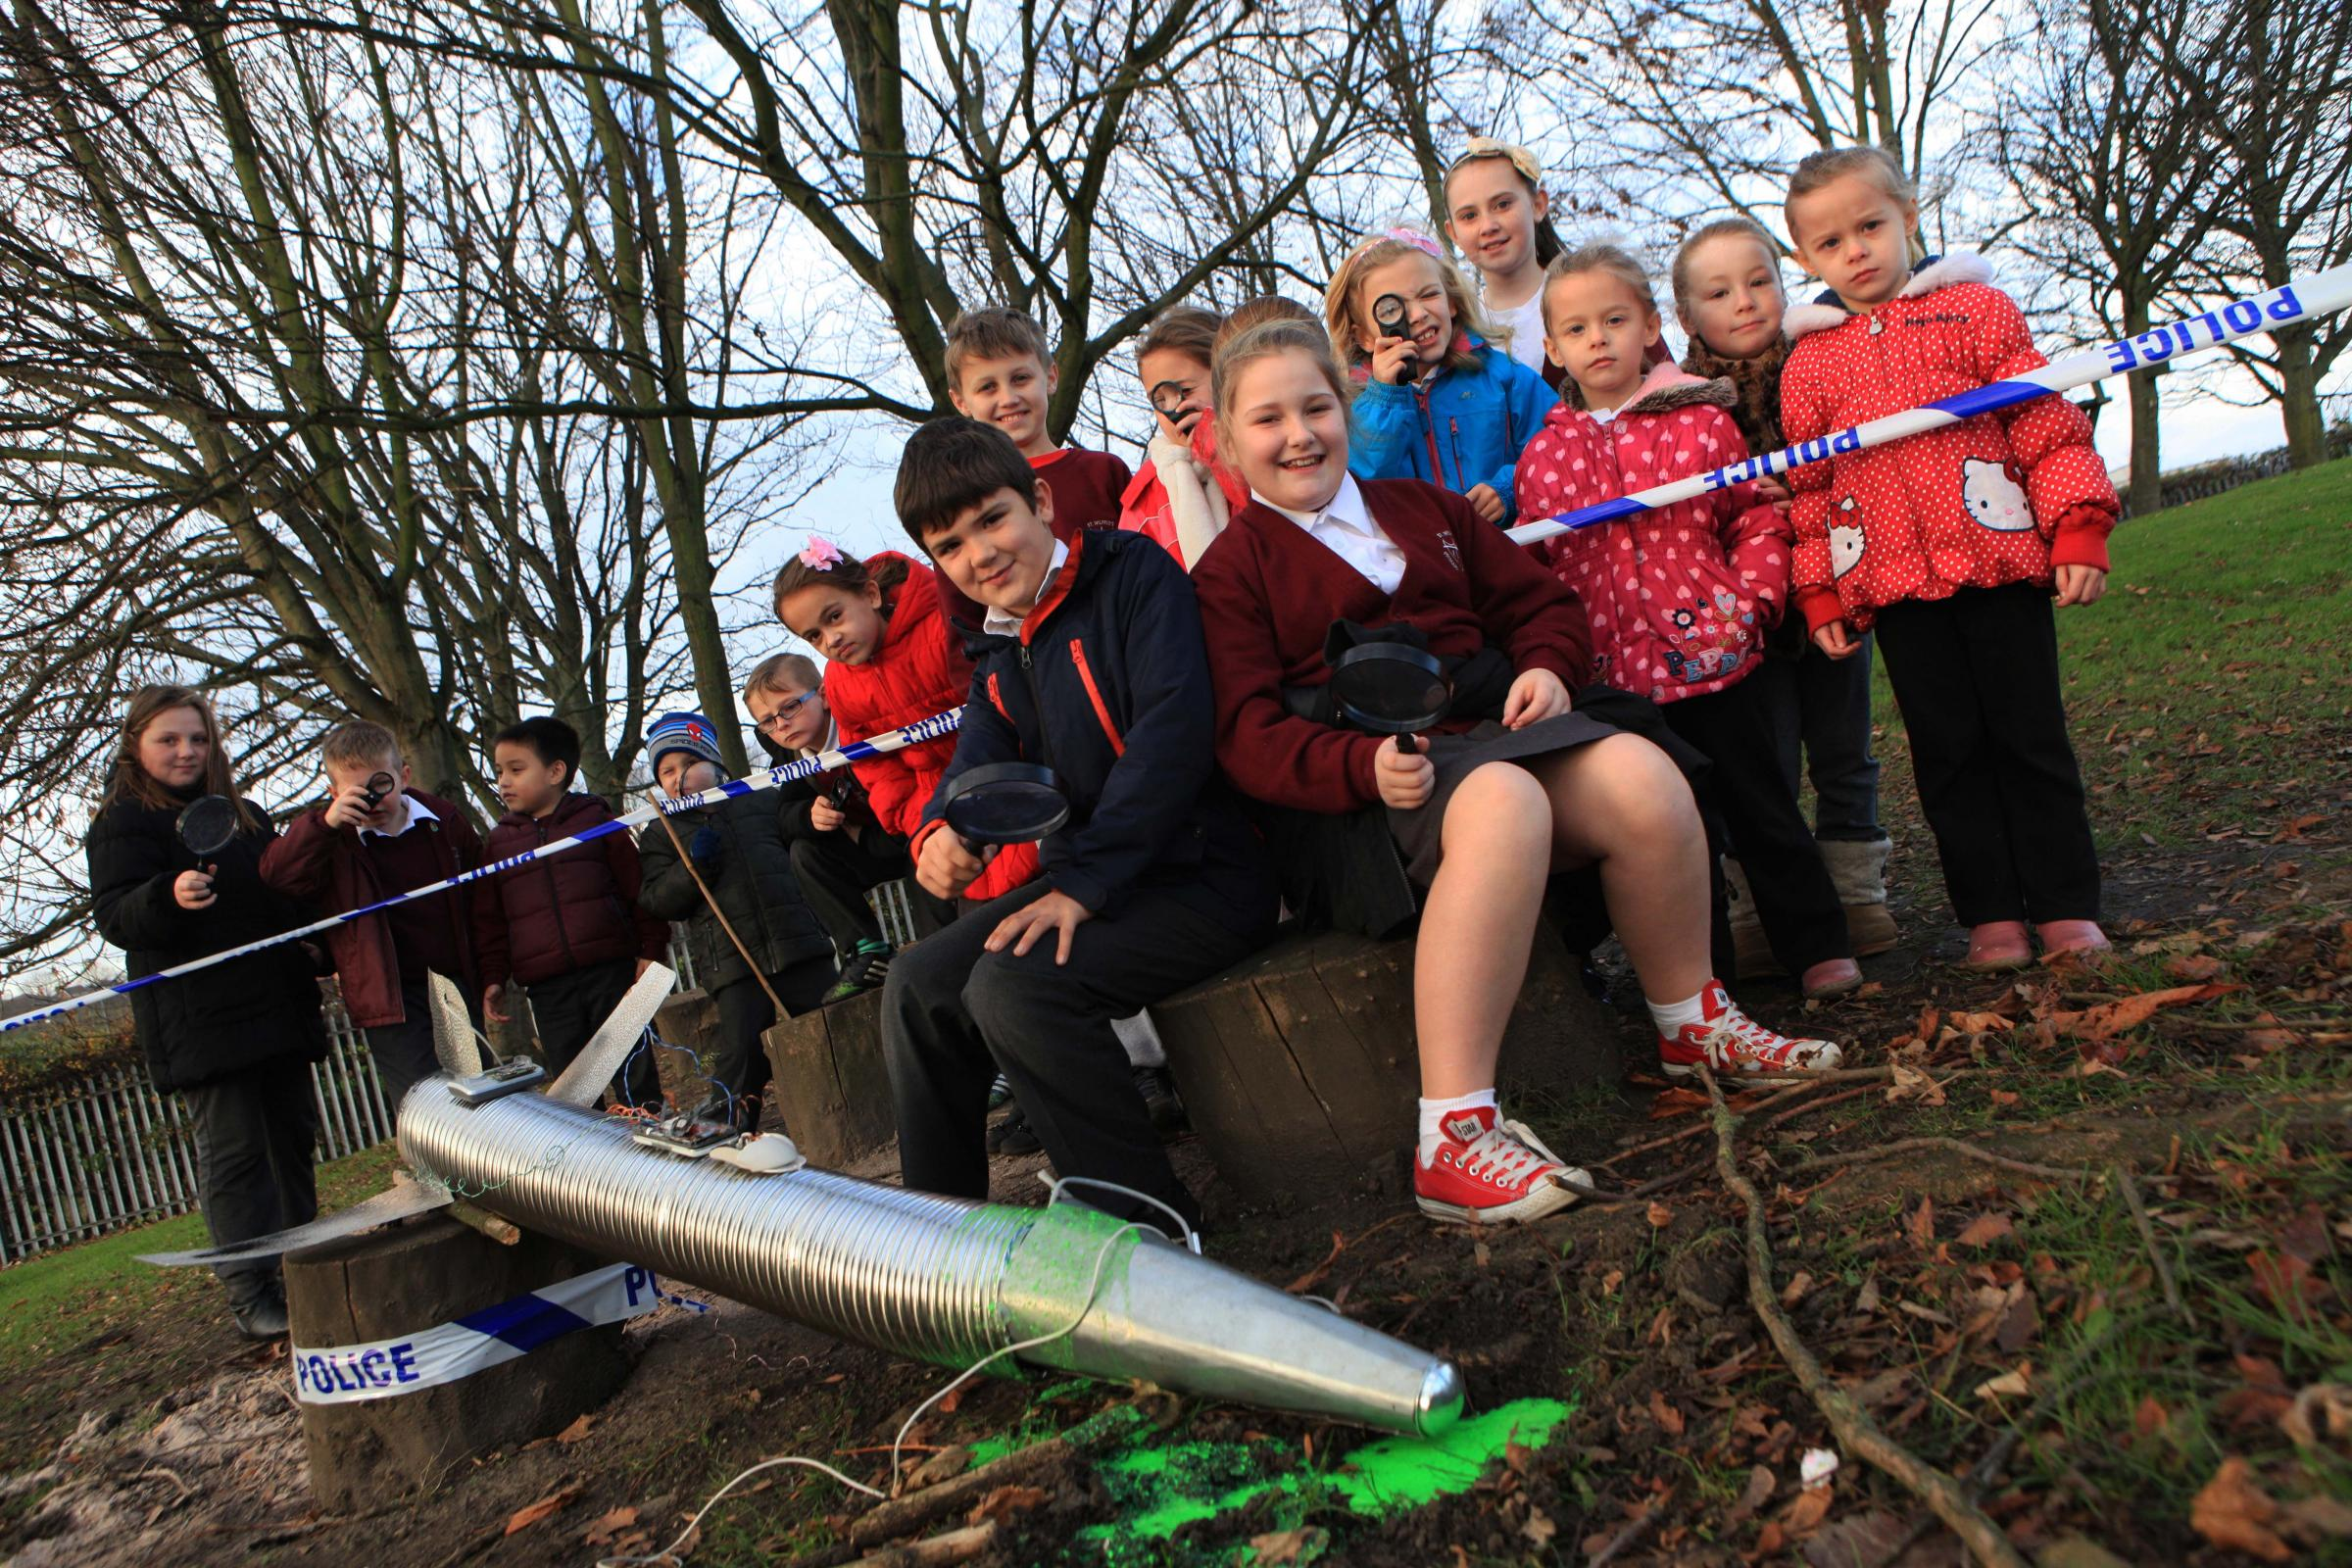 Pupils from St Wilfrid's RC Primary School, Bishop Auckland, investigate UFO crash landing in school field pictured front Nathan Slater, 9, and Olivia Thompson, 9.